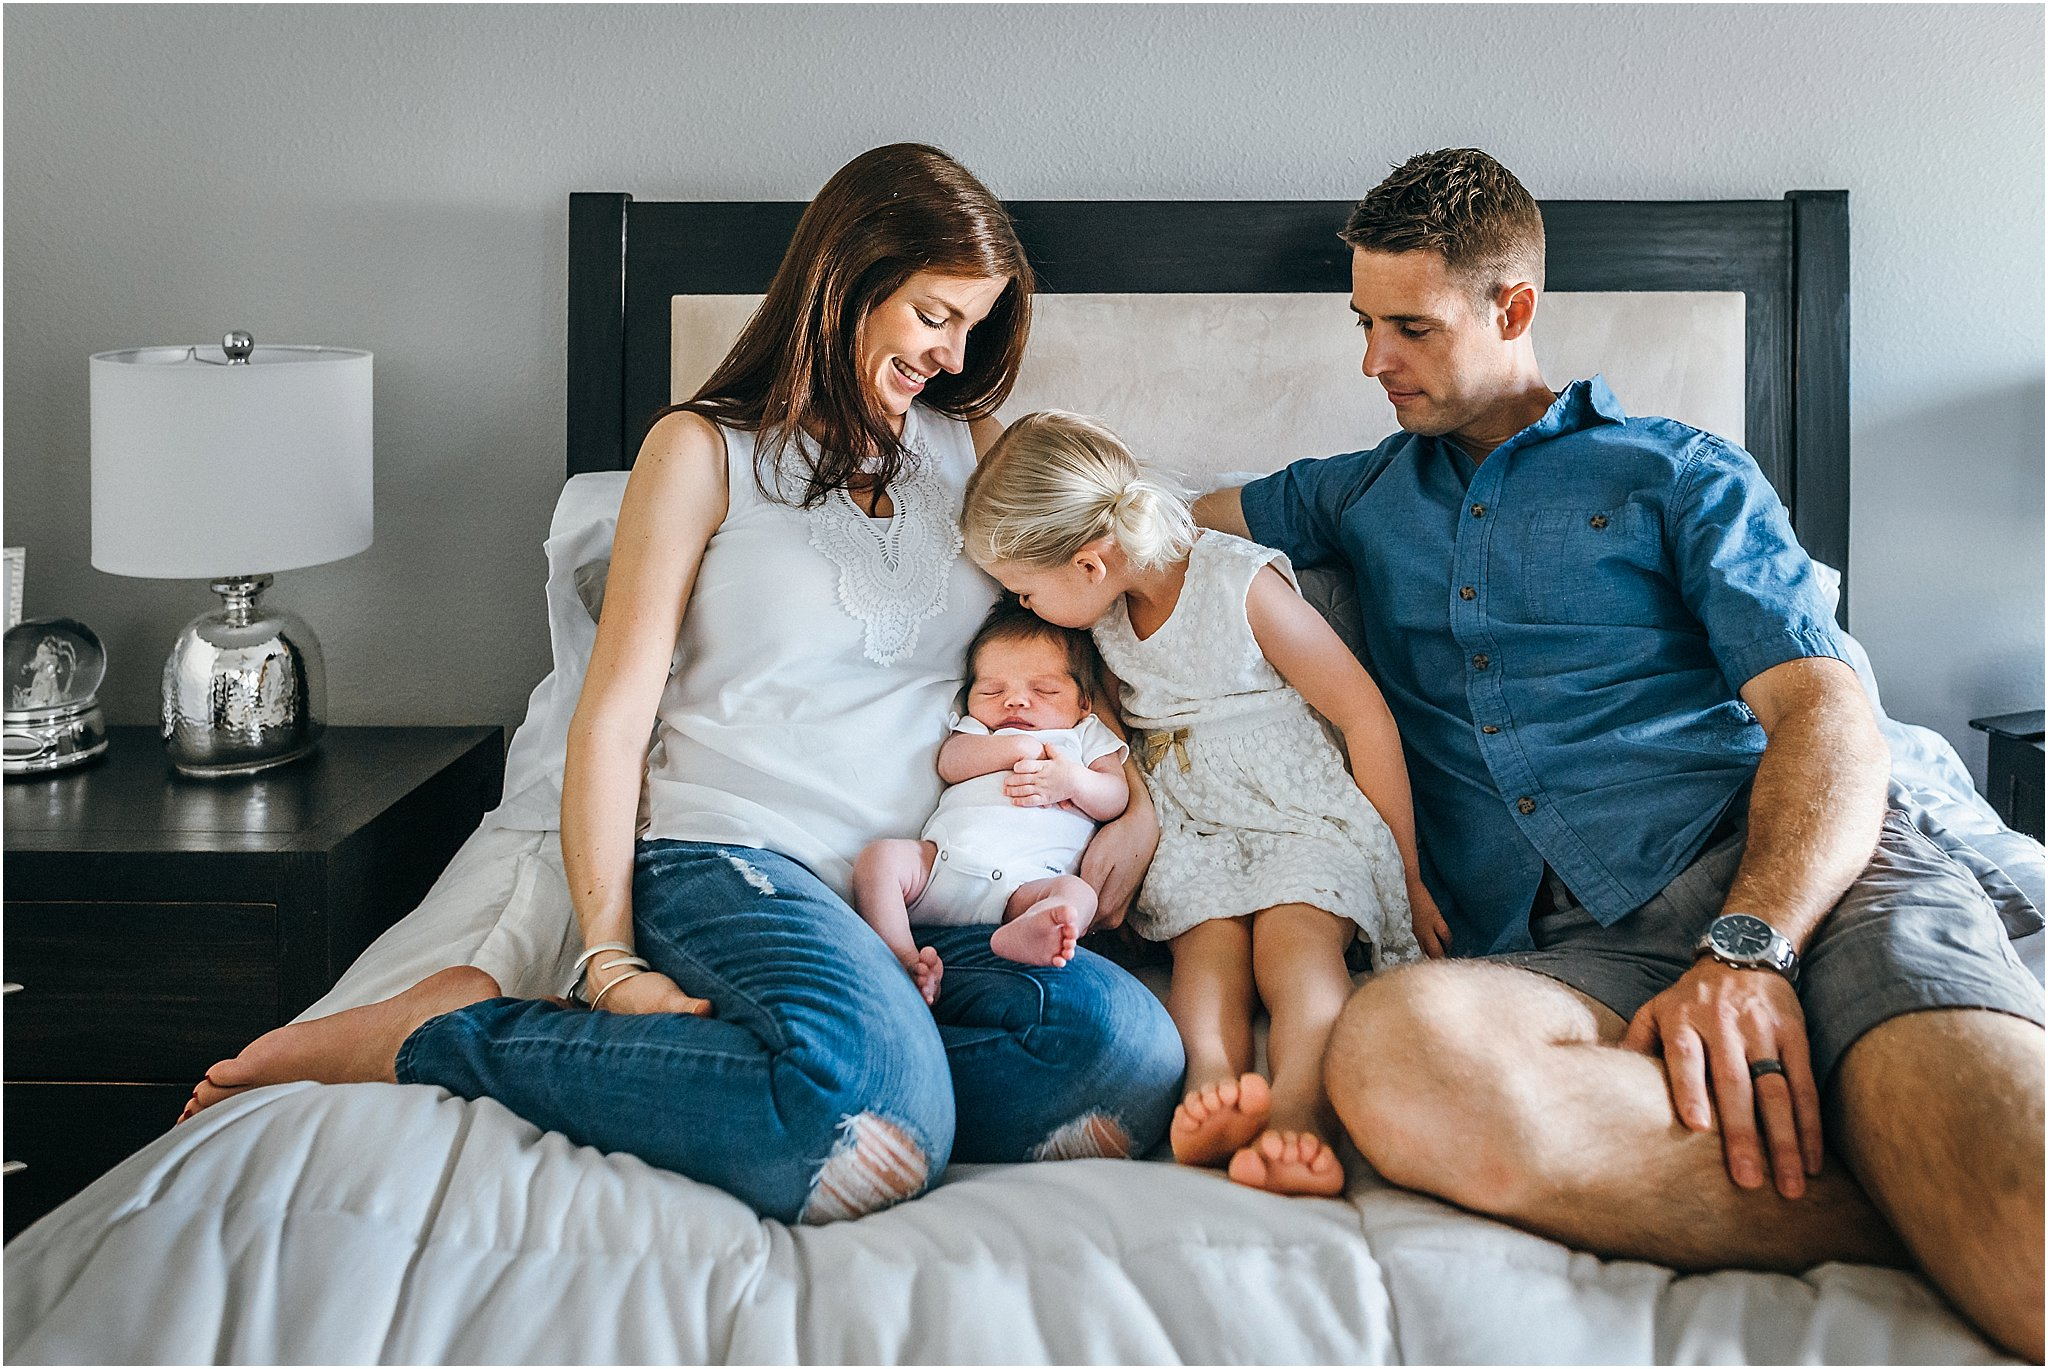 Ashley_Rogers_Photography_Orlando_Non-Posed_Newborn_Family_Lifestyle_Photographer_0360.jpg